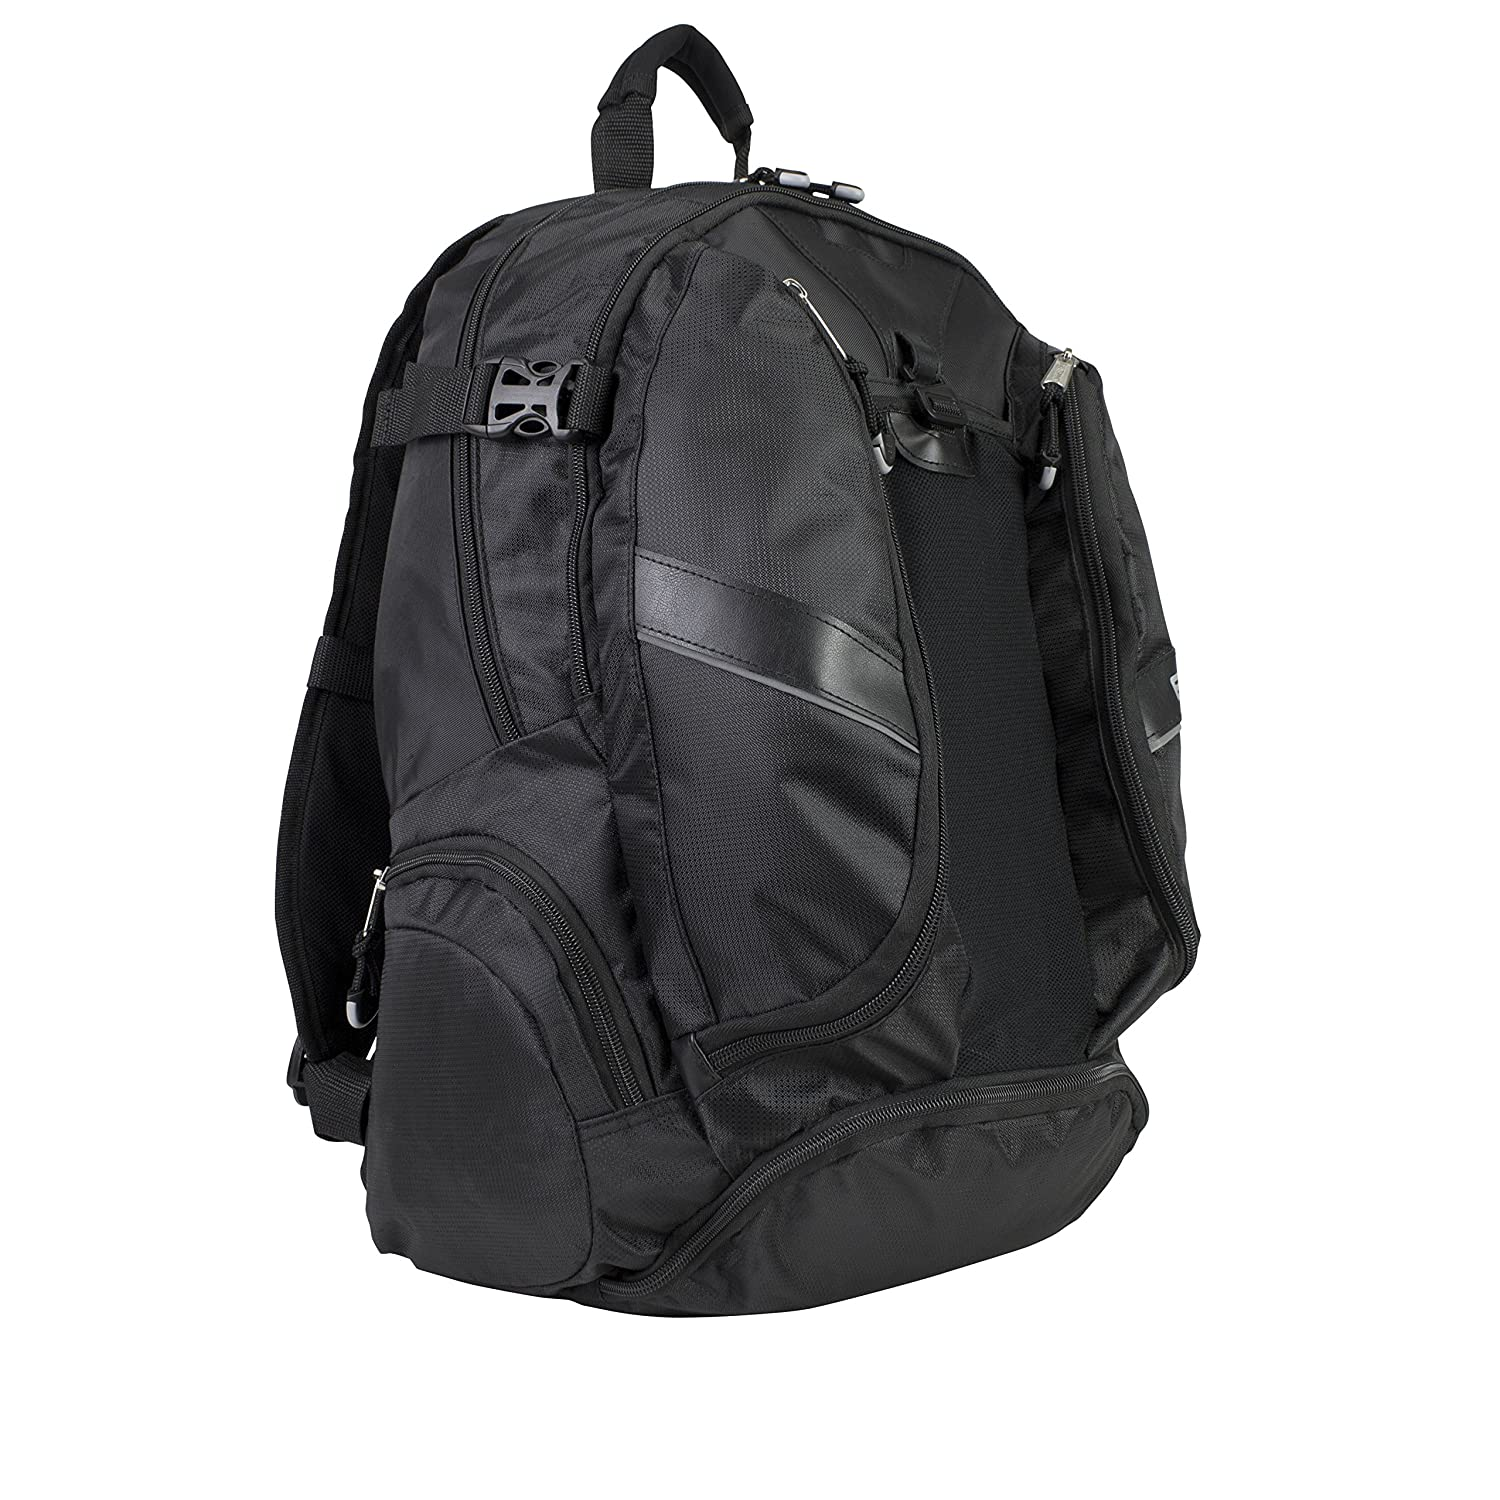 Eastsport Deluxe Mutli-Zip Backpack, Black